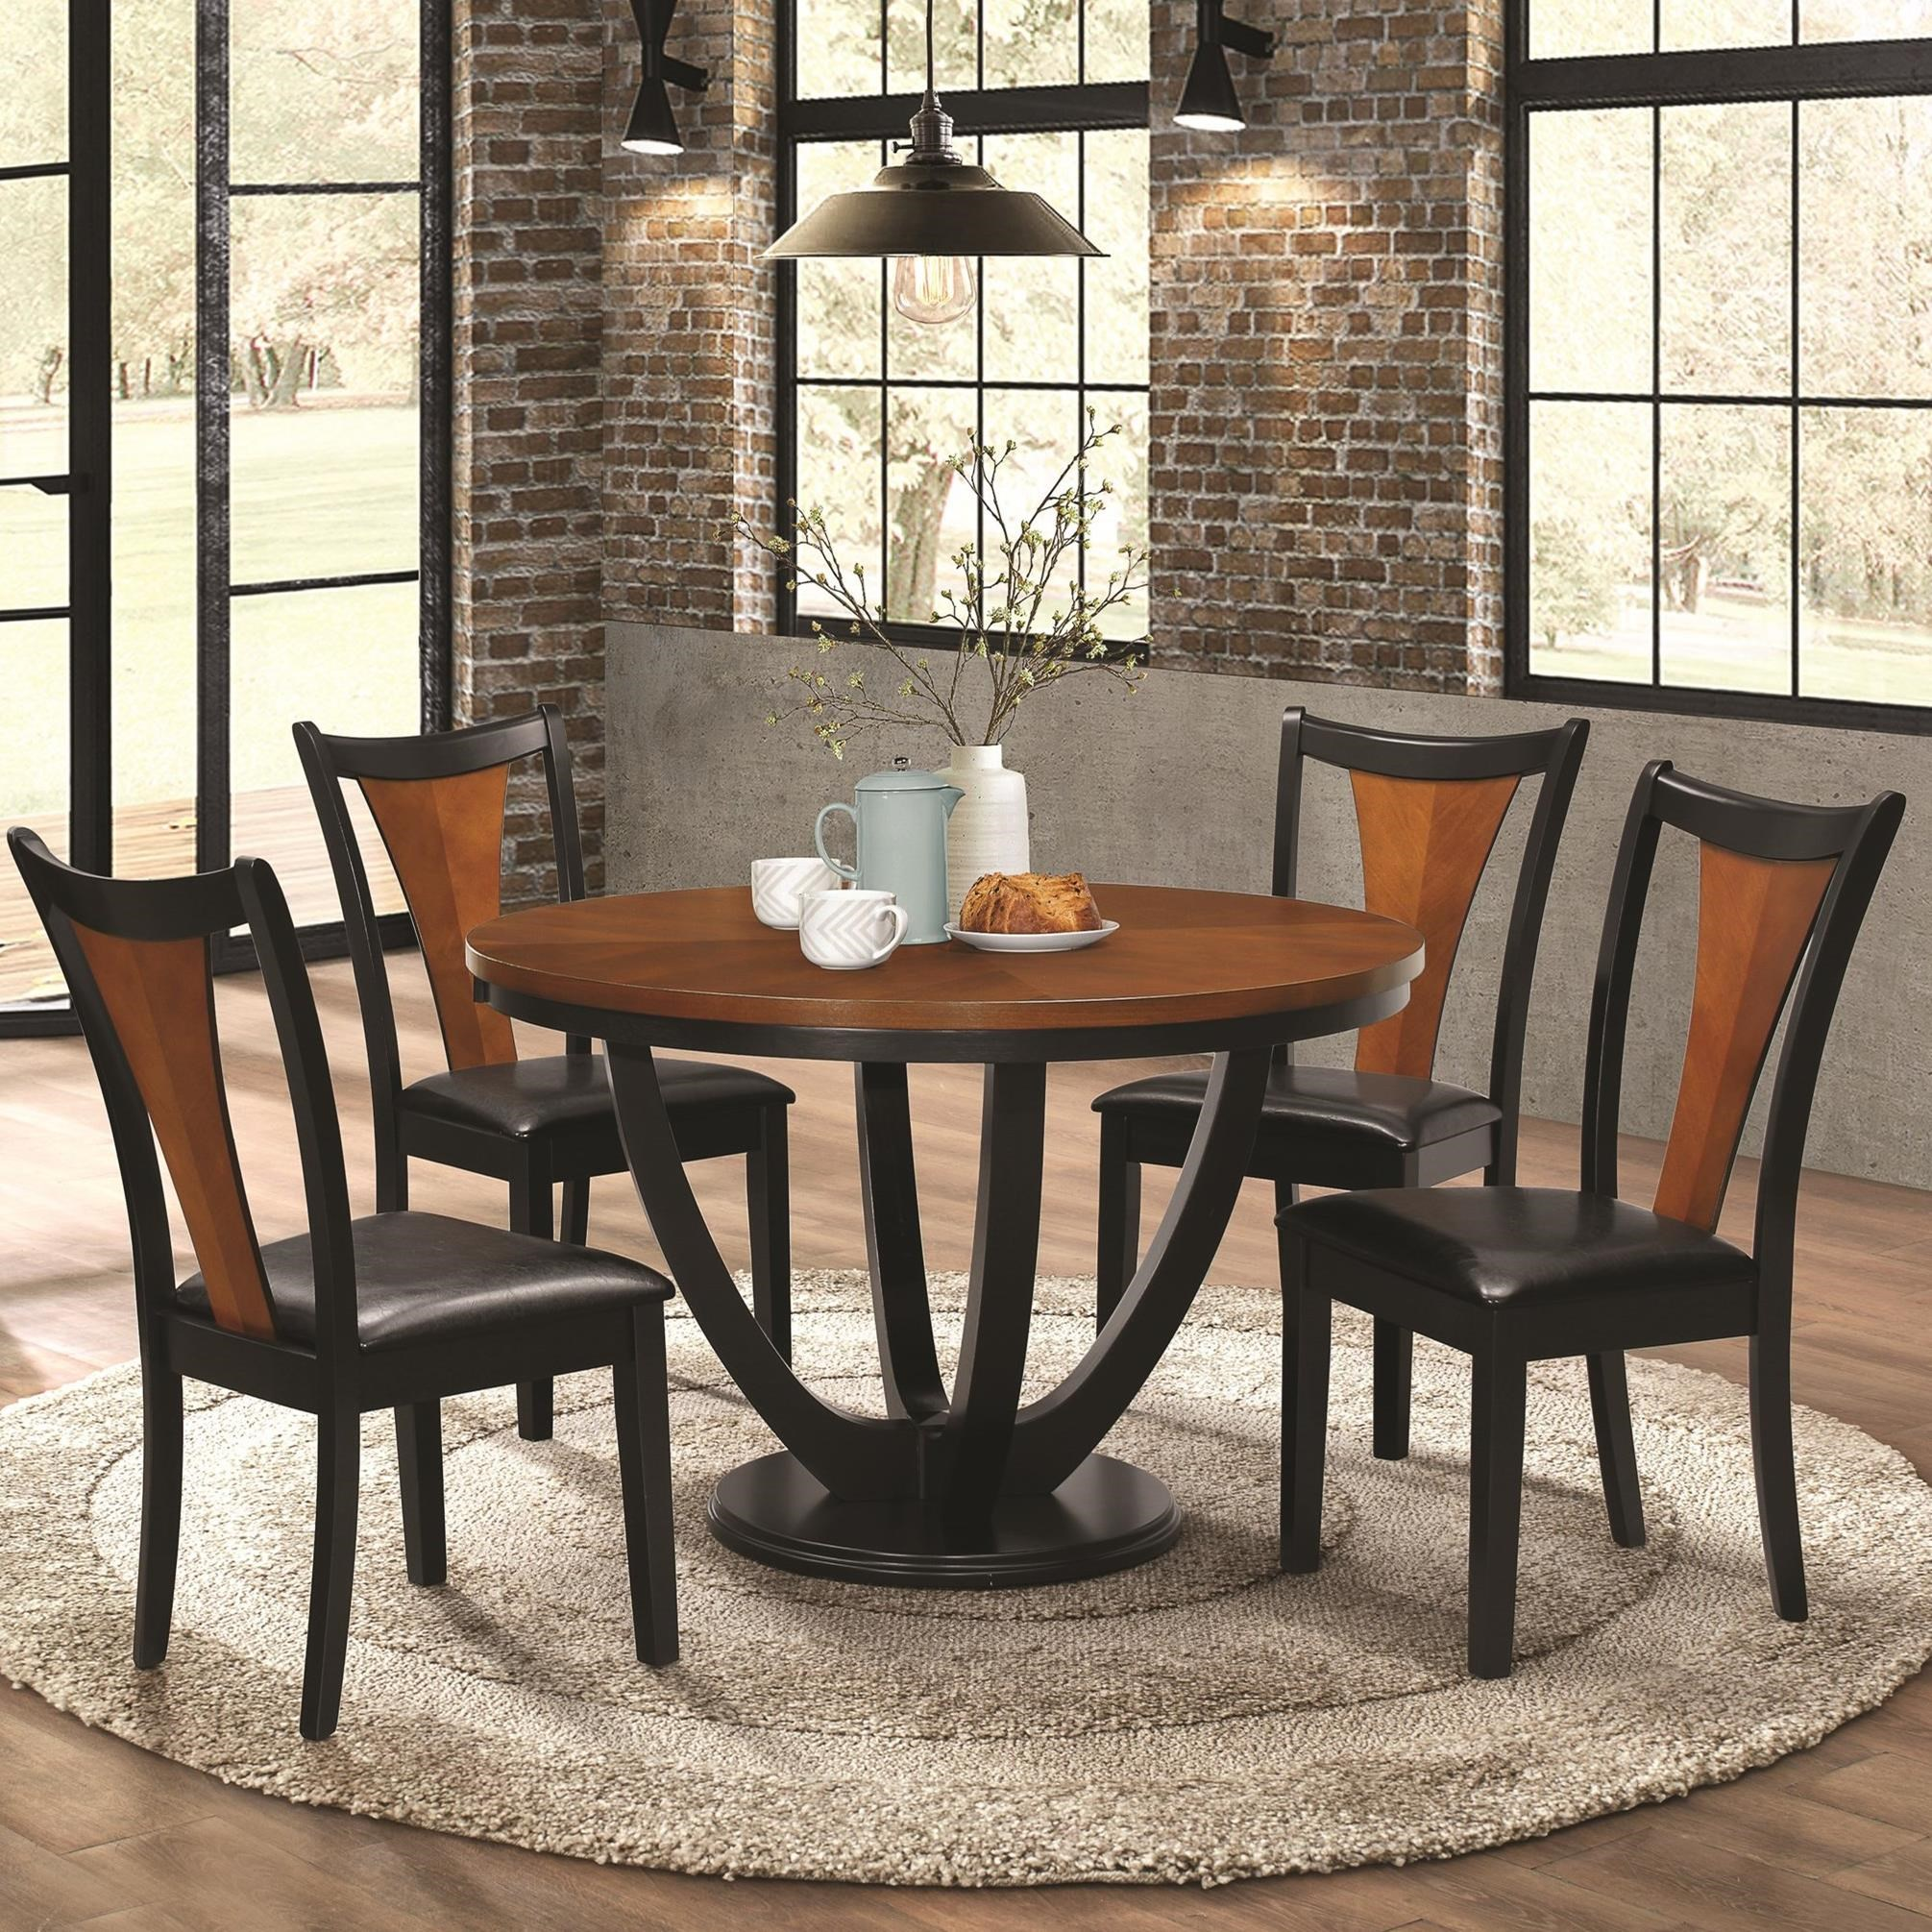 Standard Furniture Cosmo 5 Piece Round Coffee Table Set W: Fine Furniture Boyer Contemporary 5 Piece Table And Chair